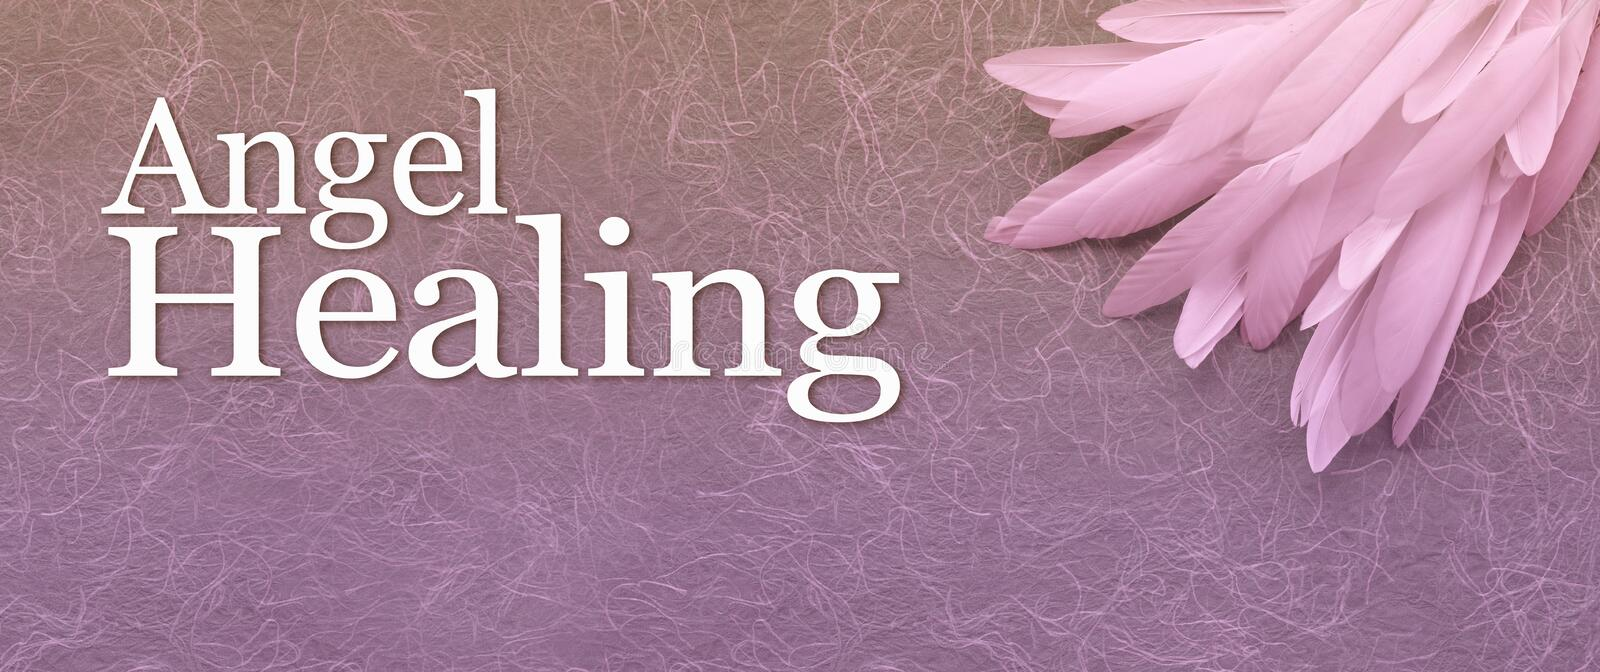 Angel Healing Website Banner Head royalty free stock photos